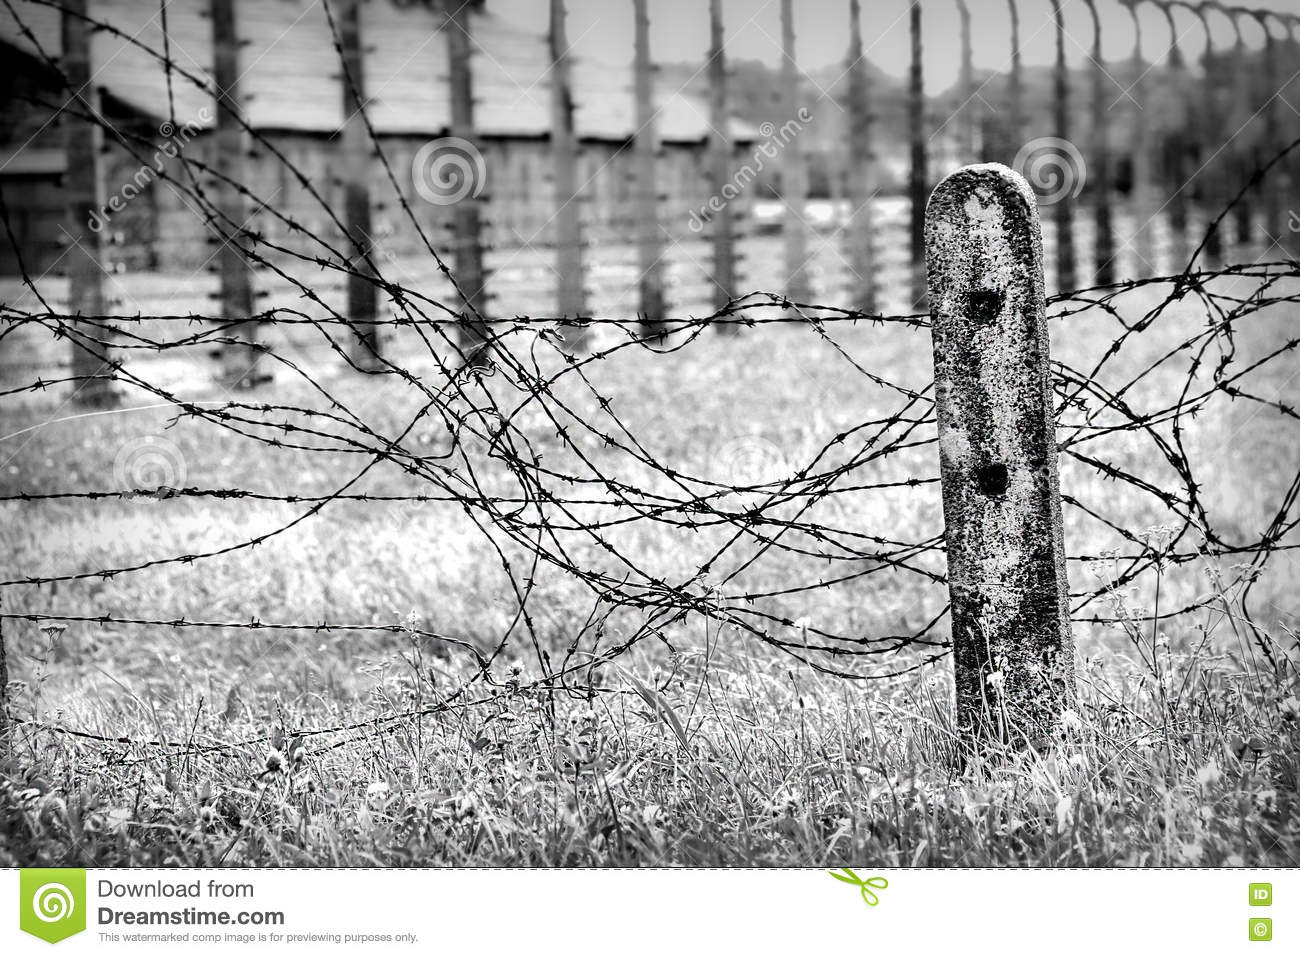 Old Worn Barbed Wire On A Field, Black And White. Stock Photo ...